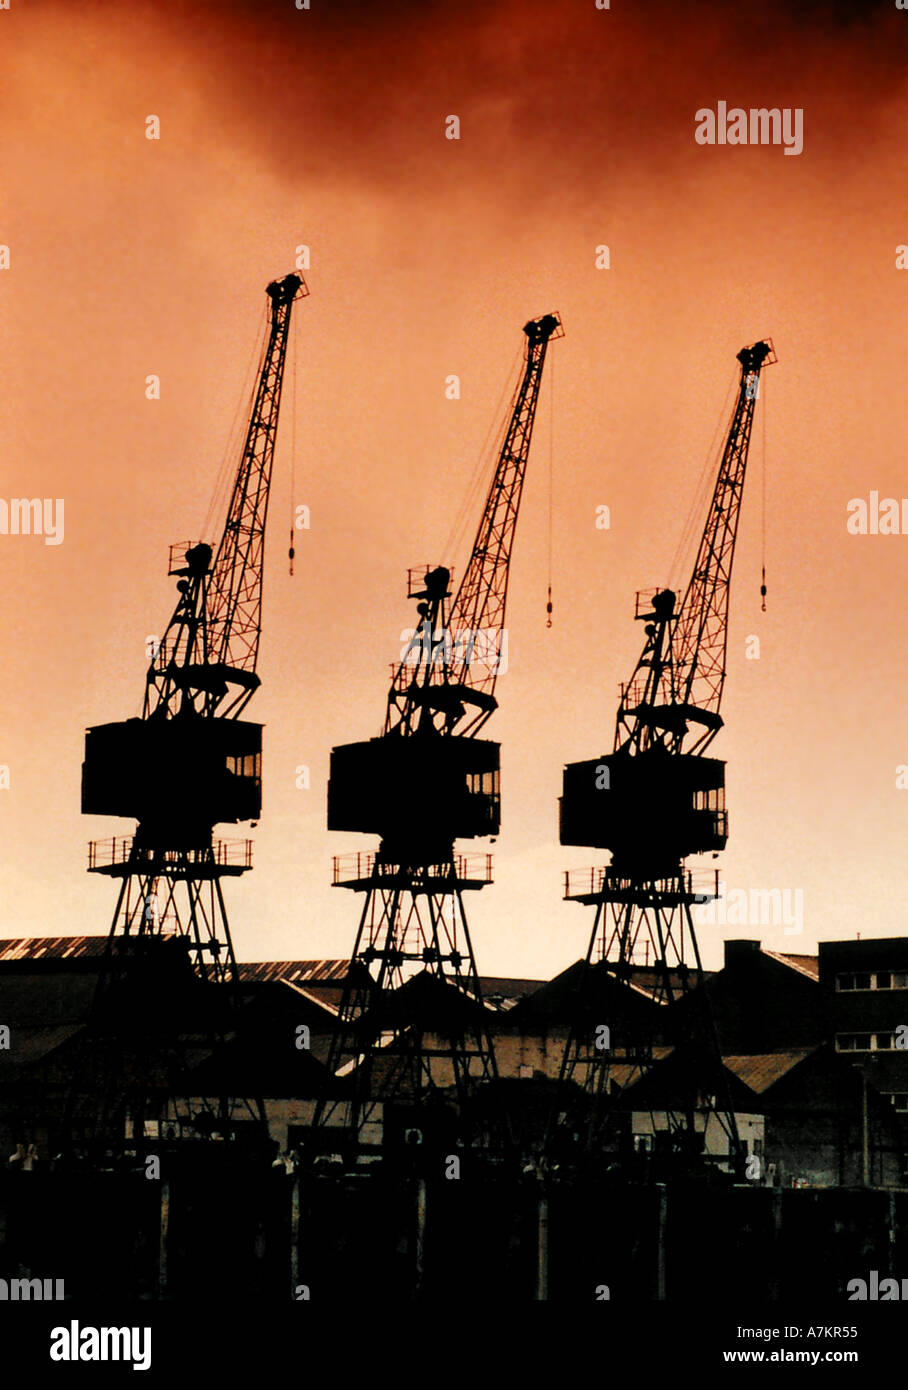 Silhouette of cranes in Docklands London - Stock Image